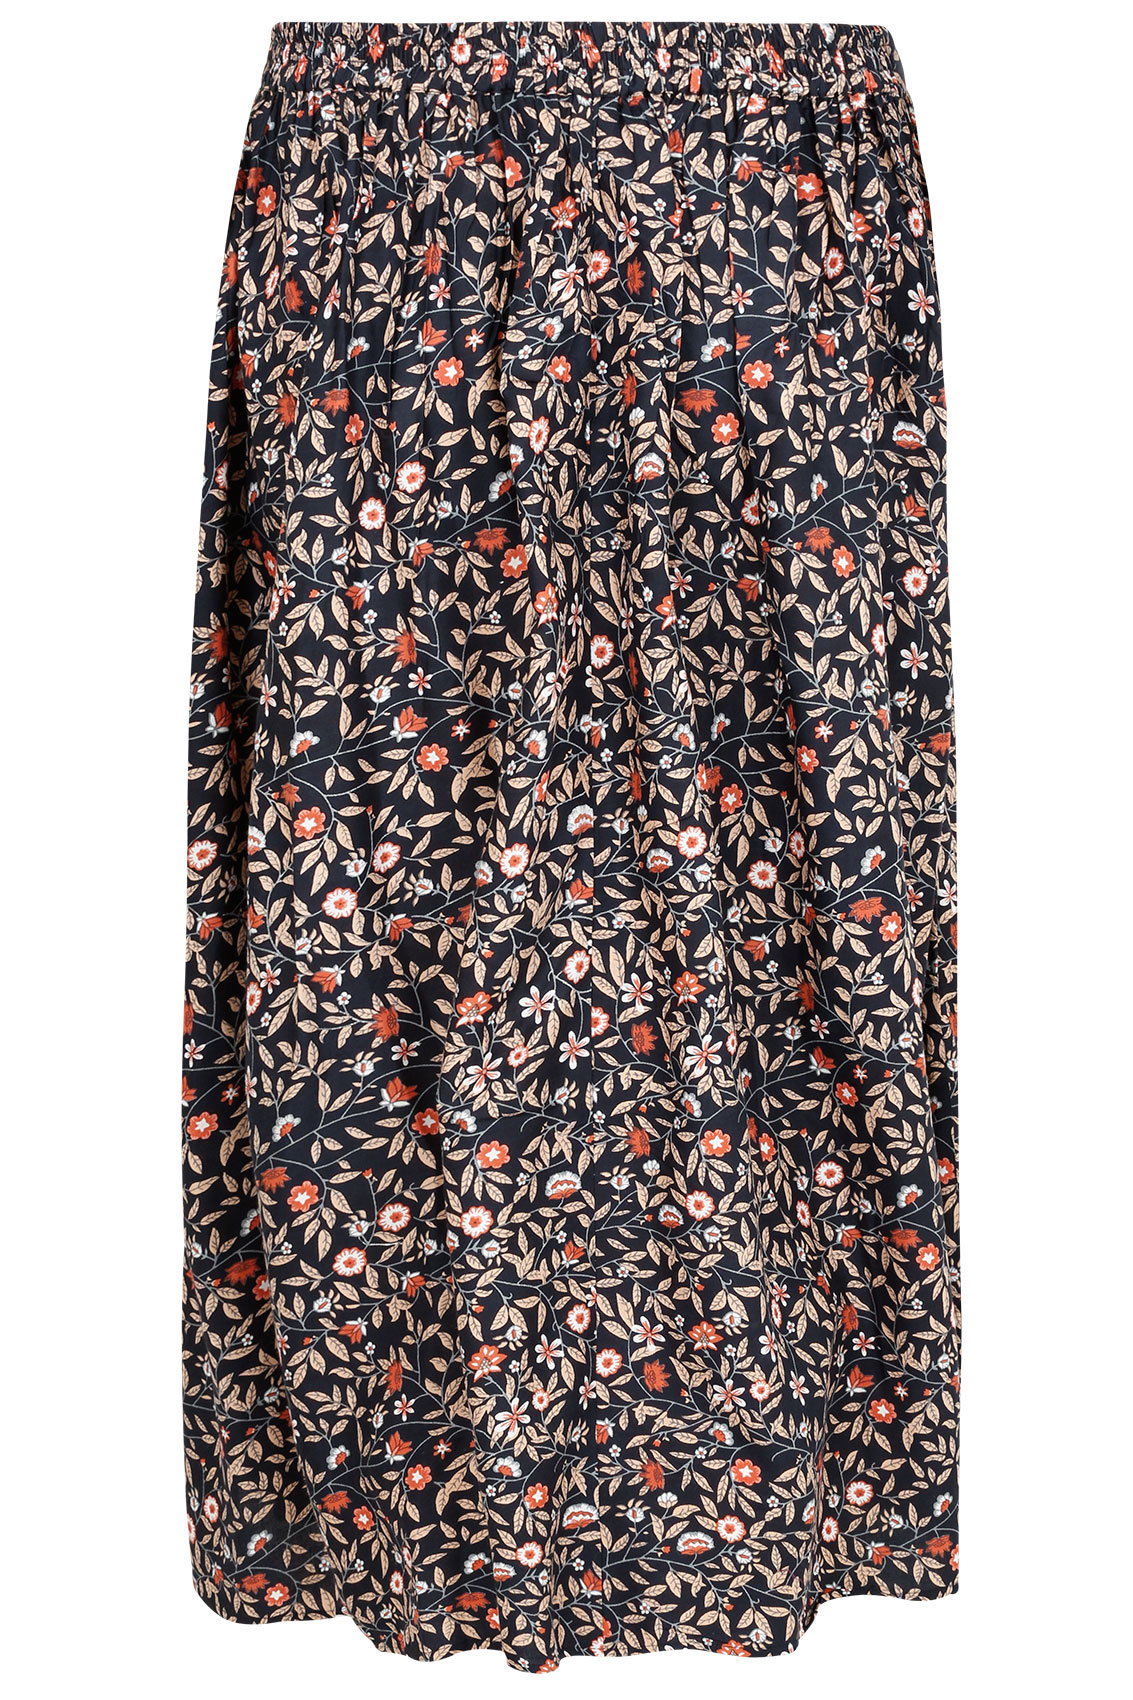 navy multi floral print vintage maxi skirt with button. Black Bedroom Furniture Sets. Home Design Ideas